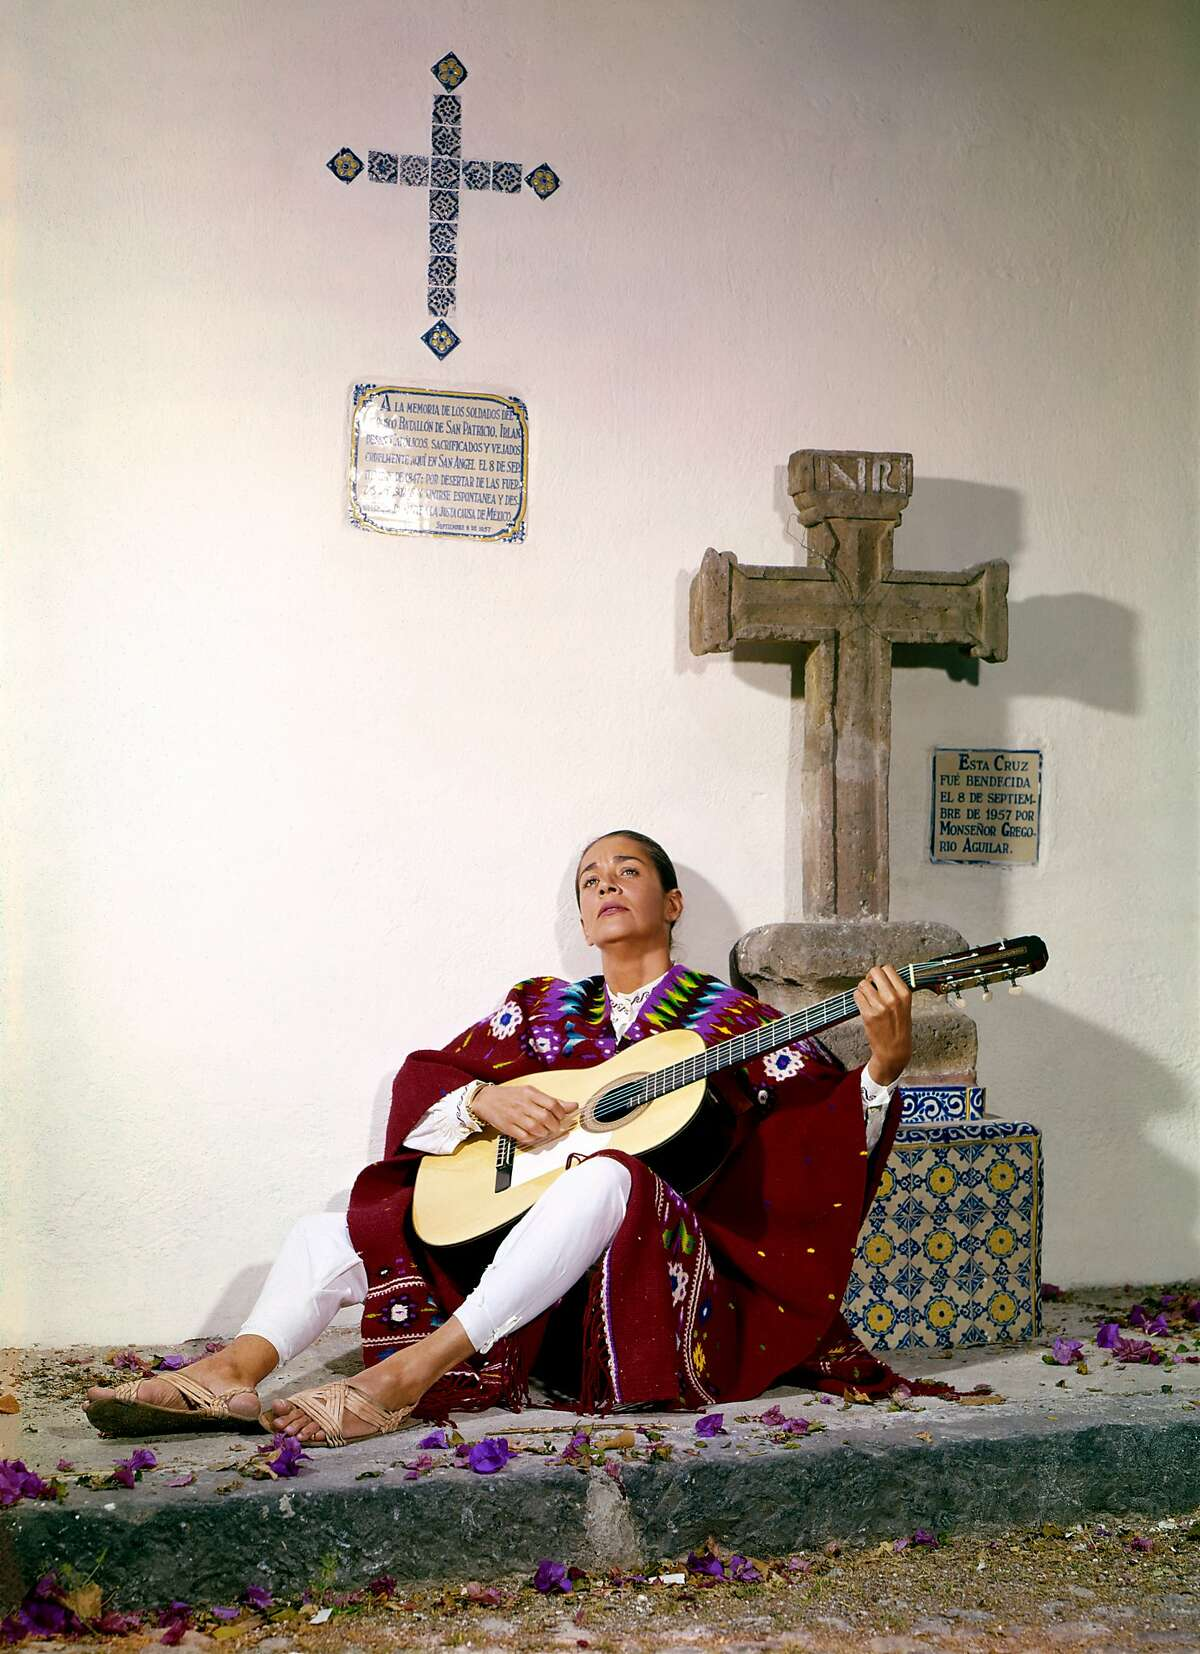 An image of Chavela Vargas from the documentary